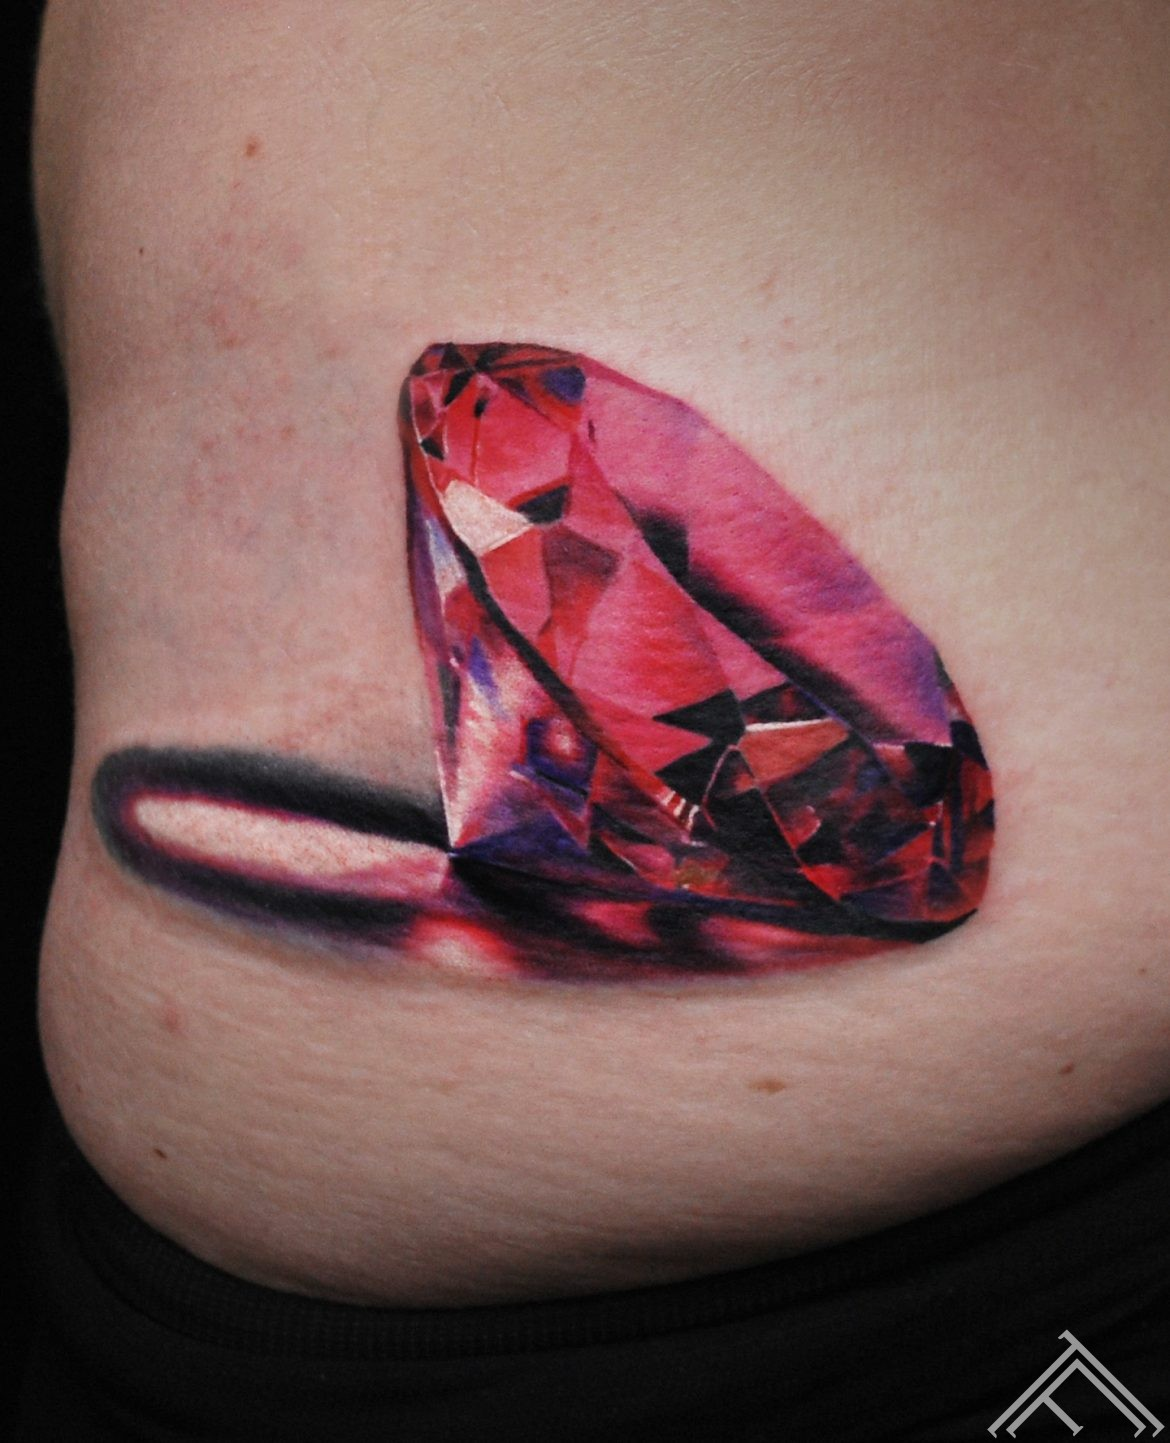 tattoo-tattoofrequency-frequency-marispavlo-diamond-pink-red-art-tattoosaloon-rigasaloontattoo